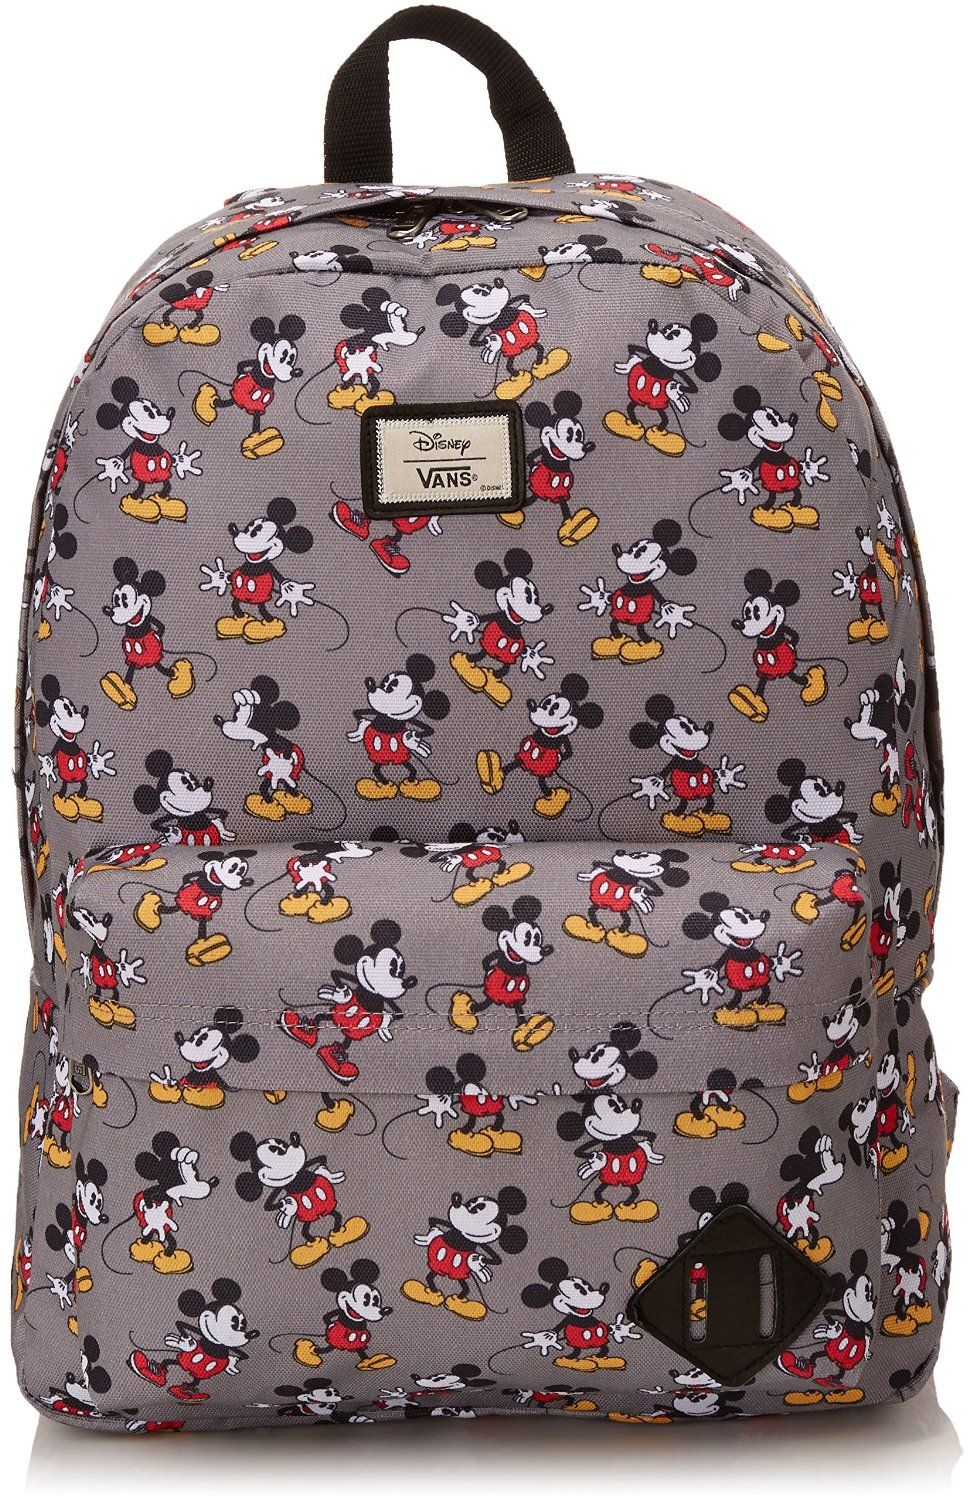 aae2e85dbc0 Disney Backpacks by Vans